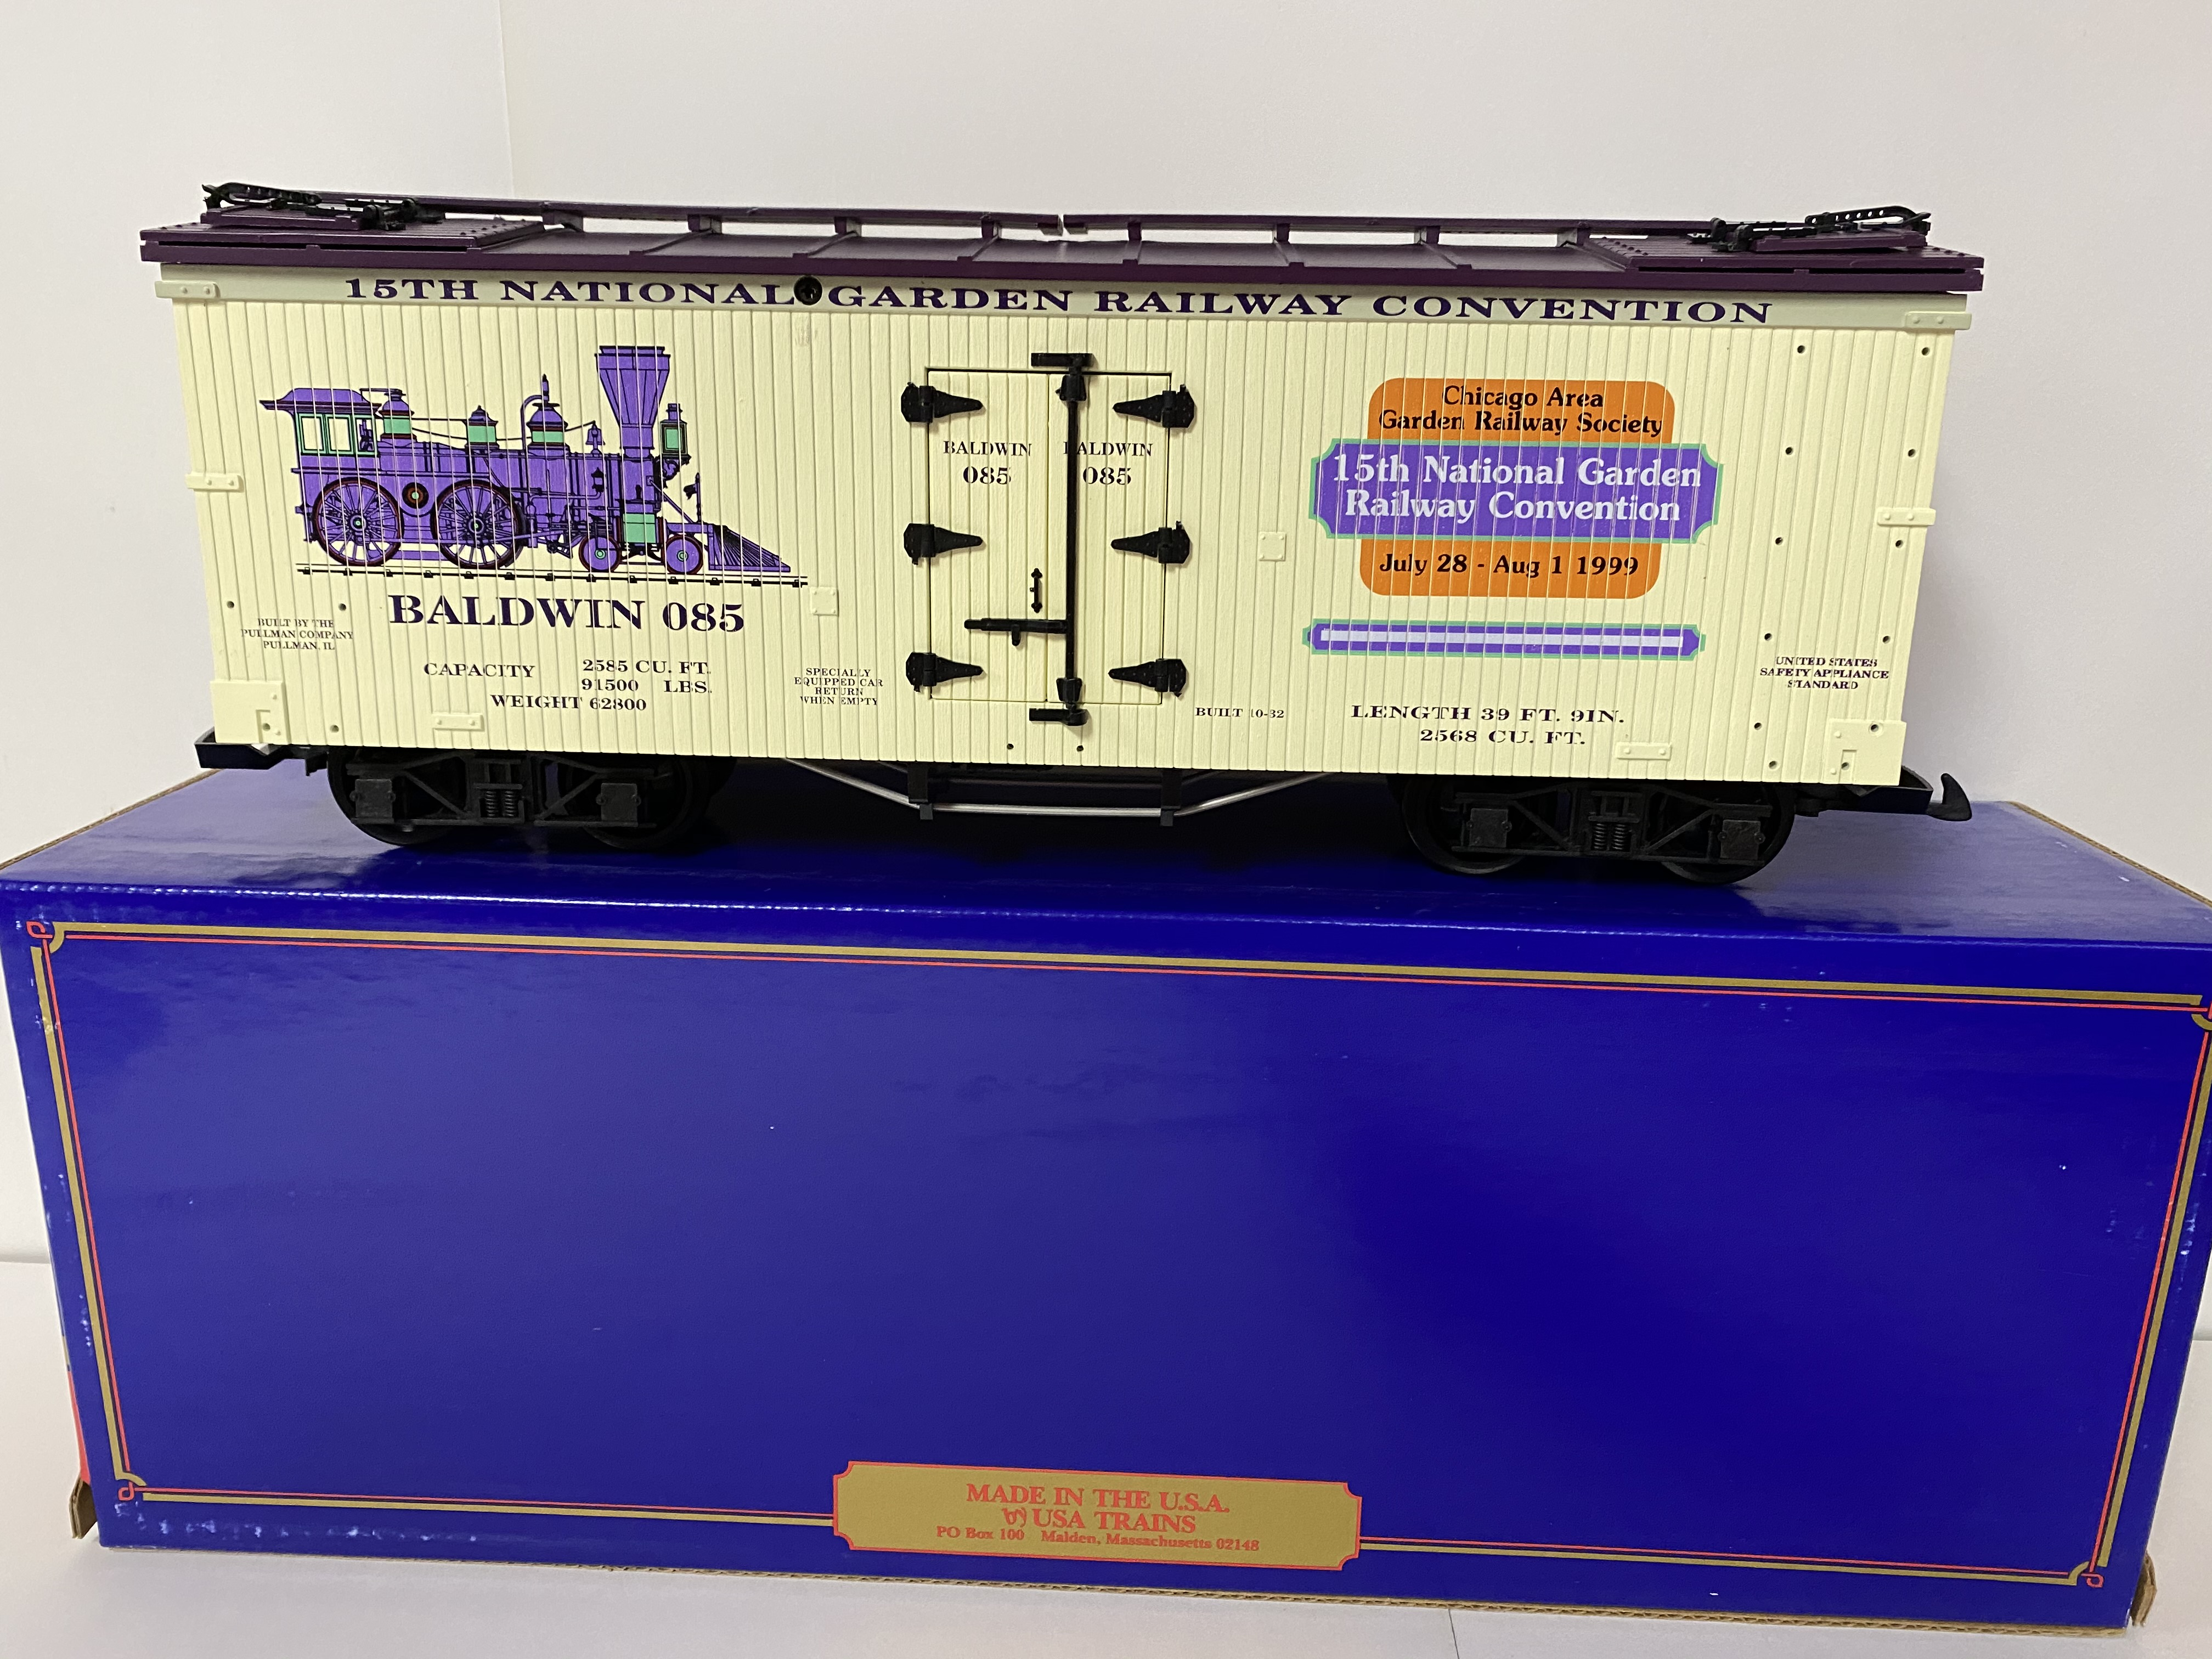 15th National Garden Railway Convention Boxcar (USA Trains)